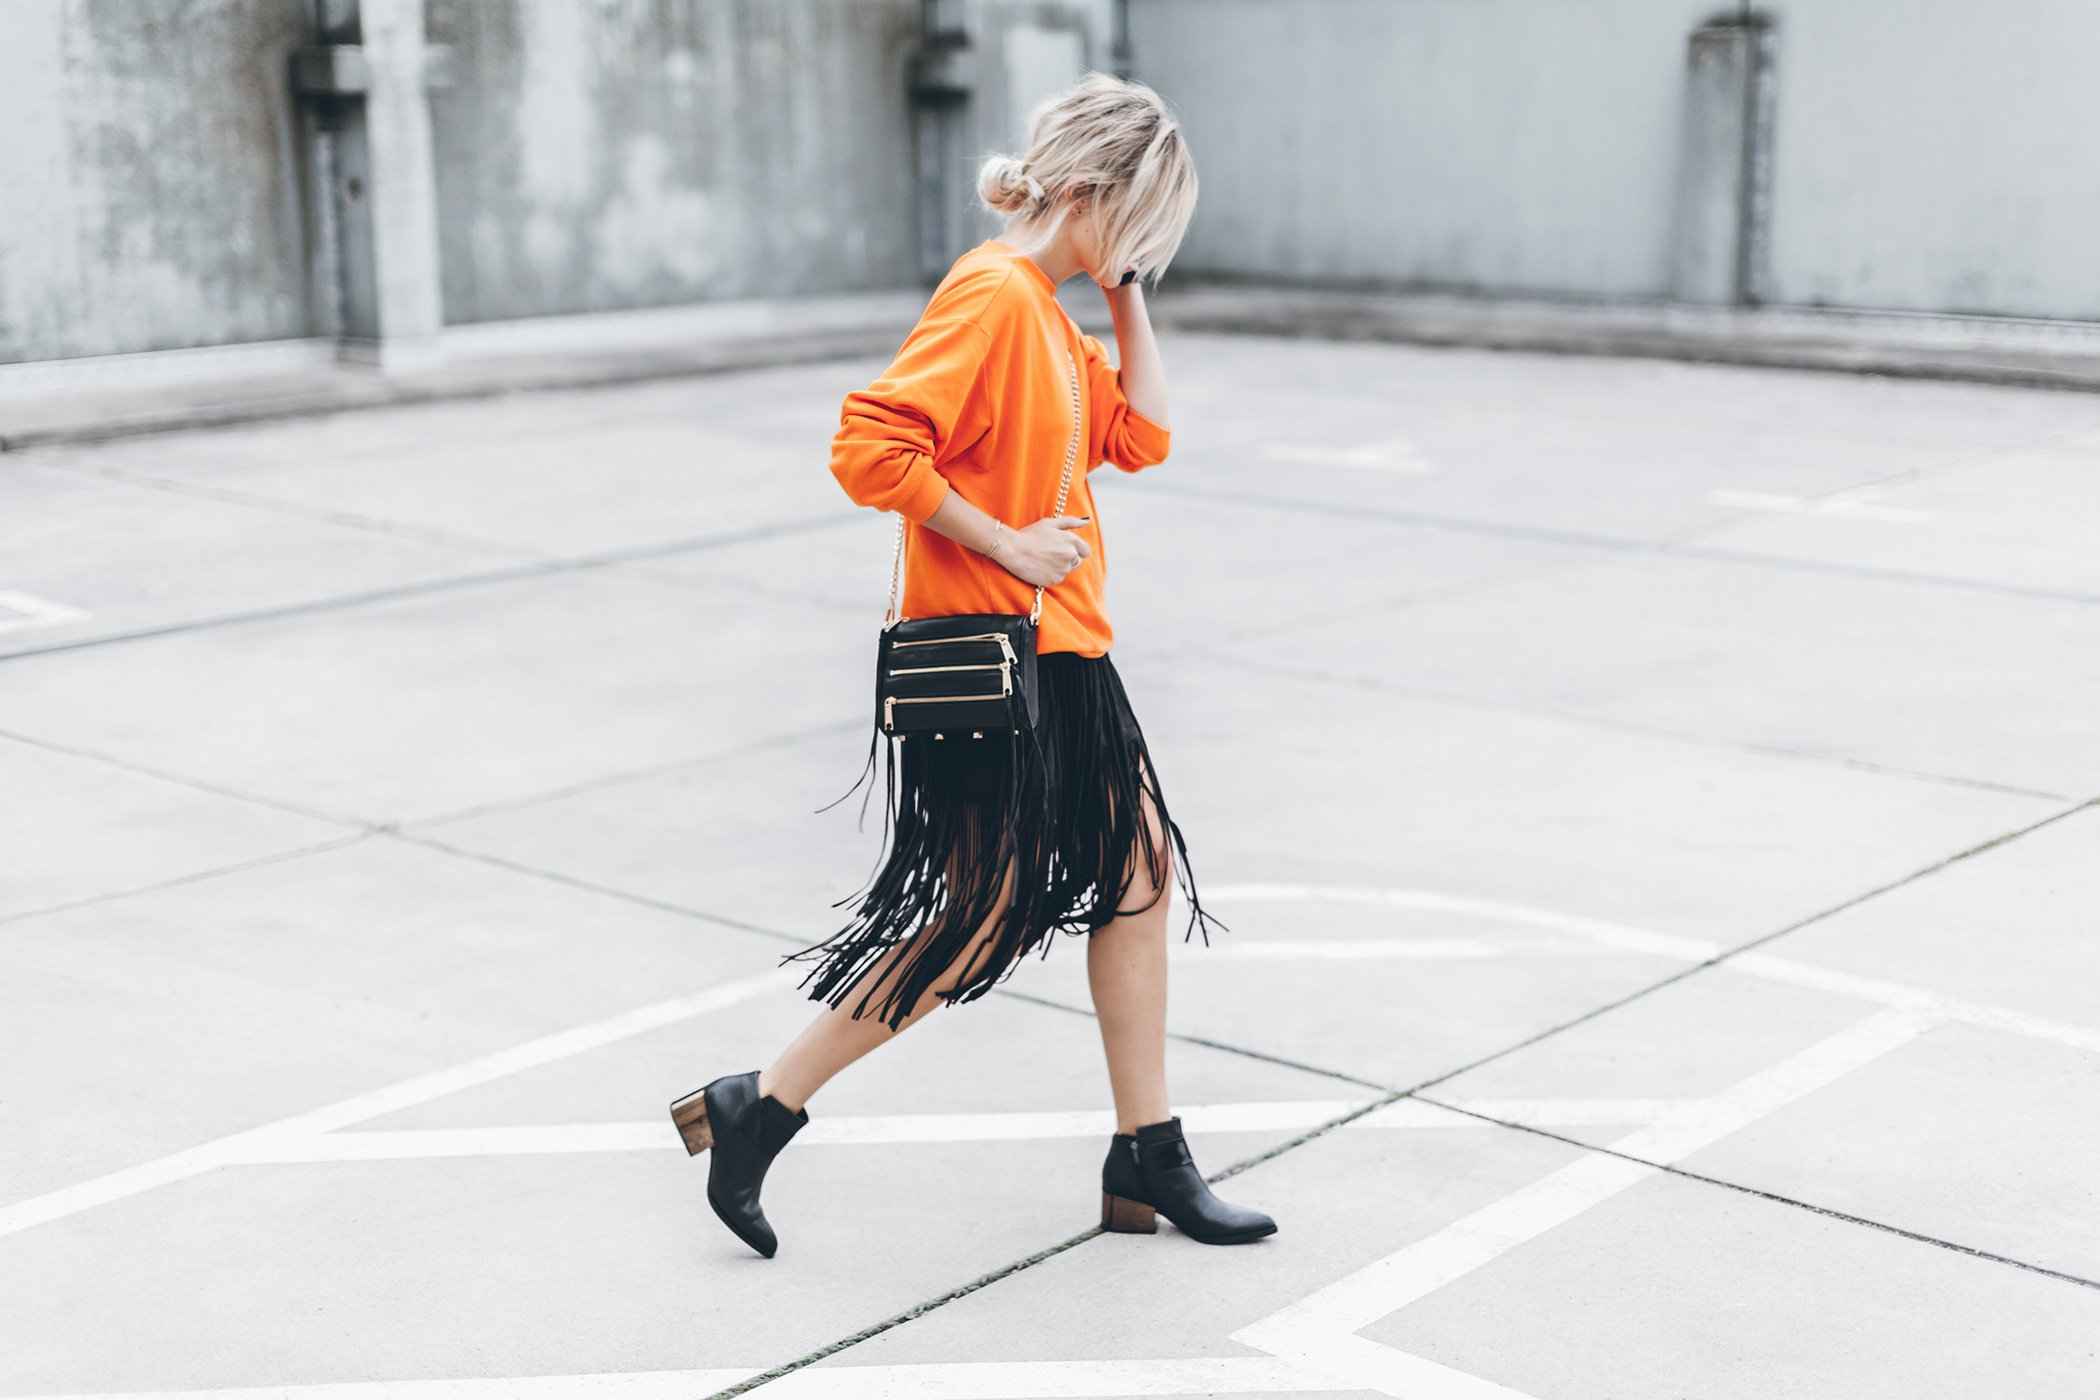 mikuta-fringe-skirt-orange-sweater